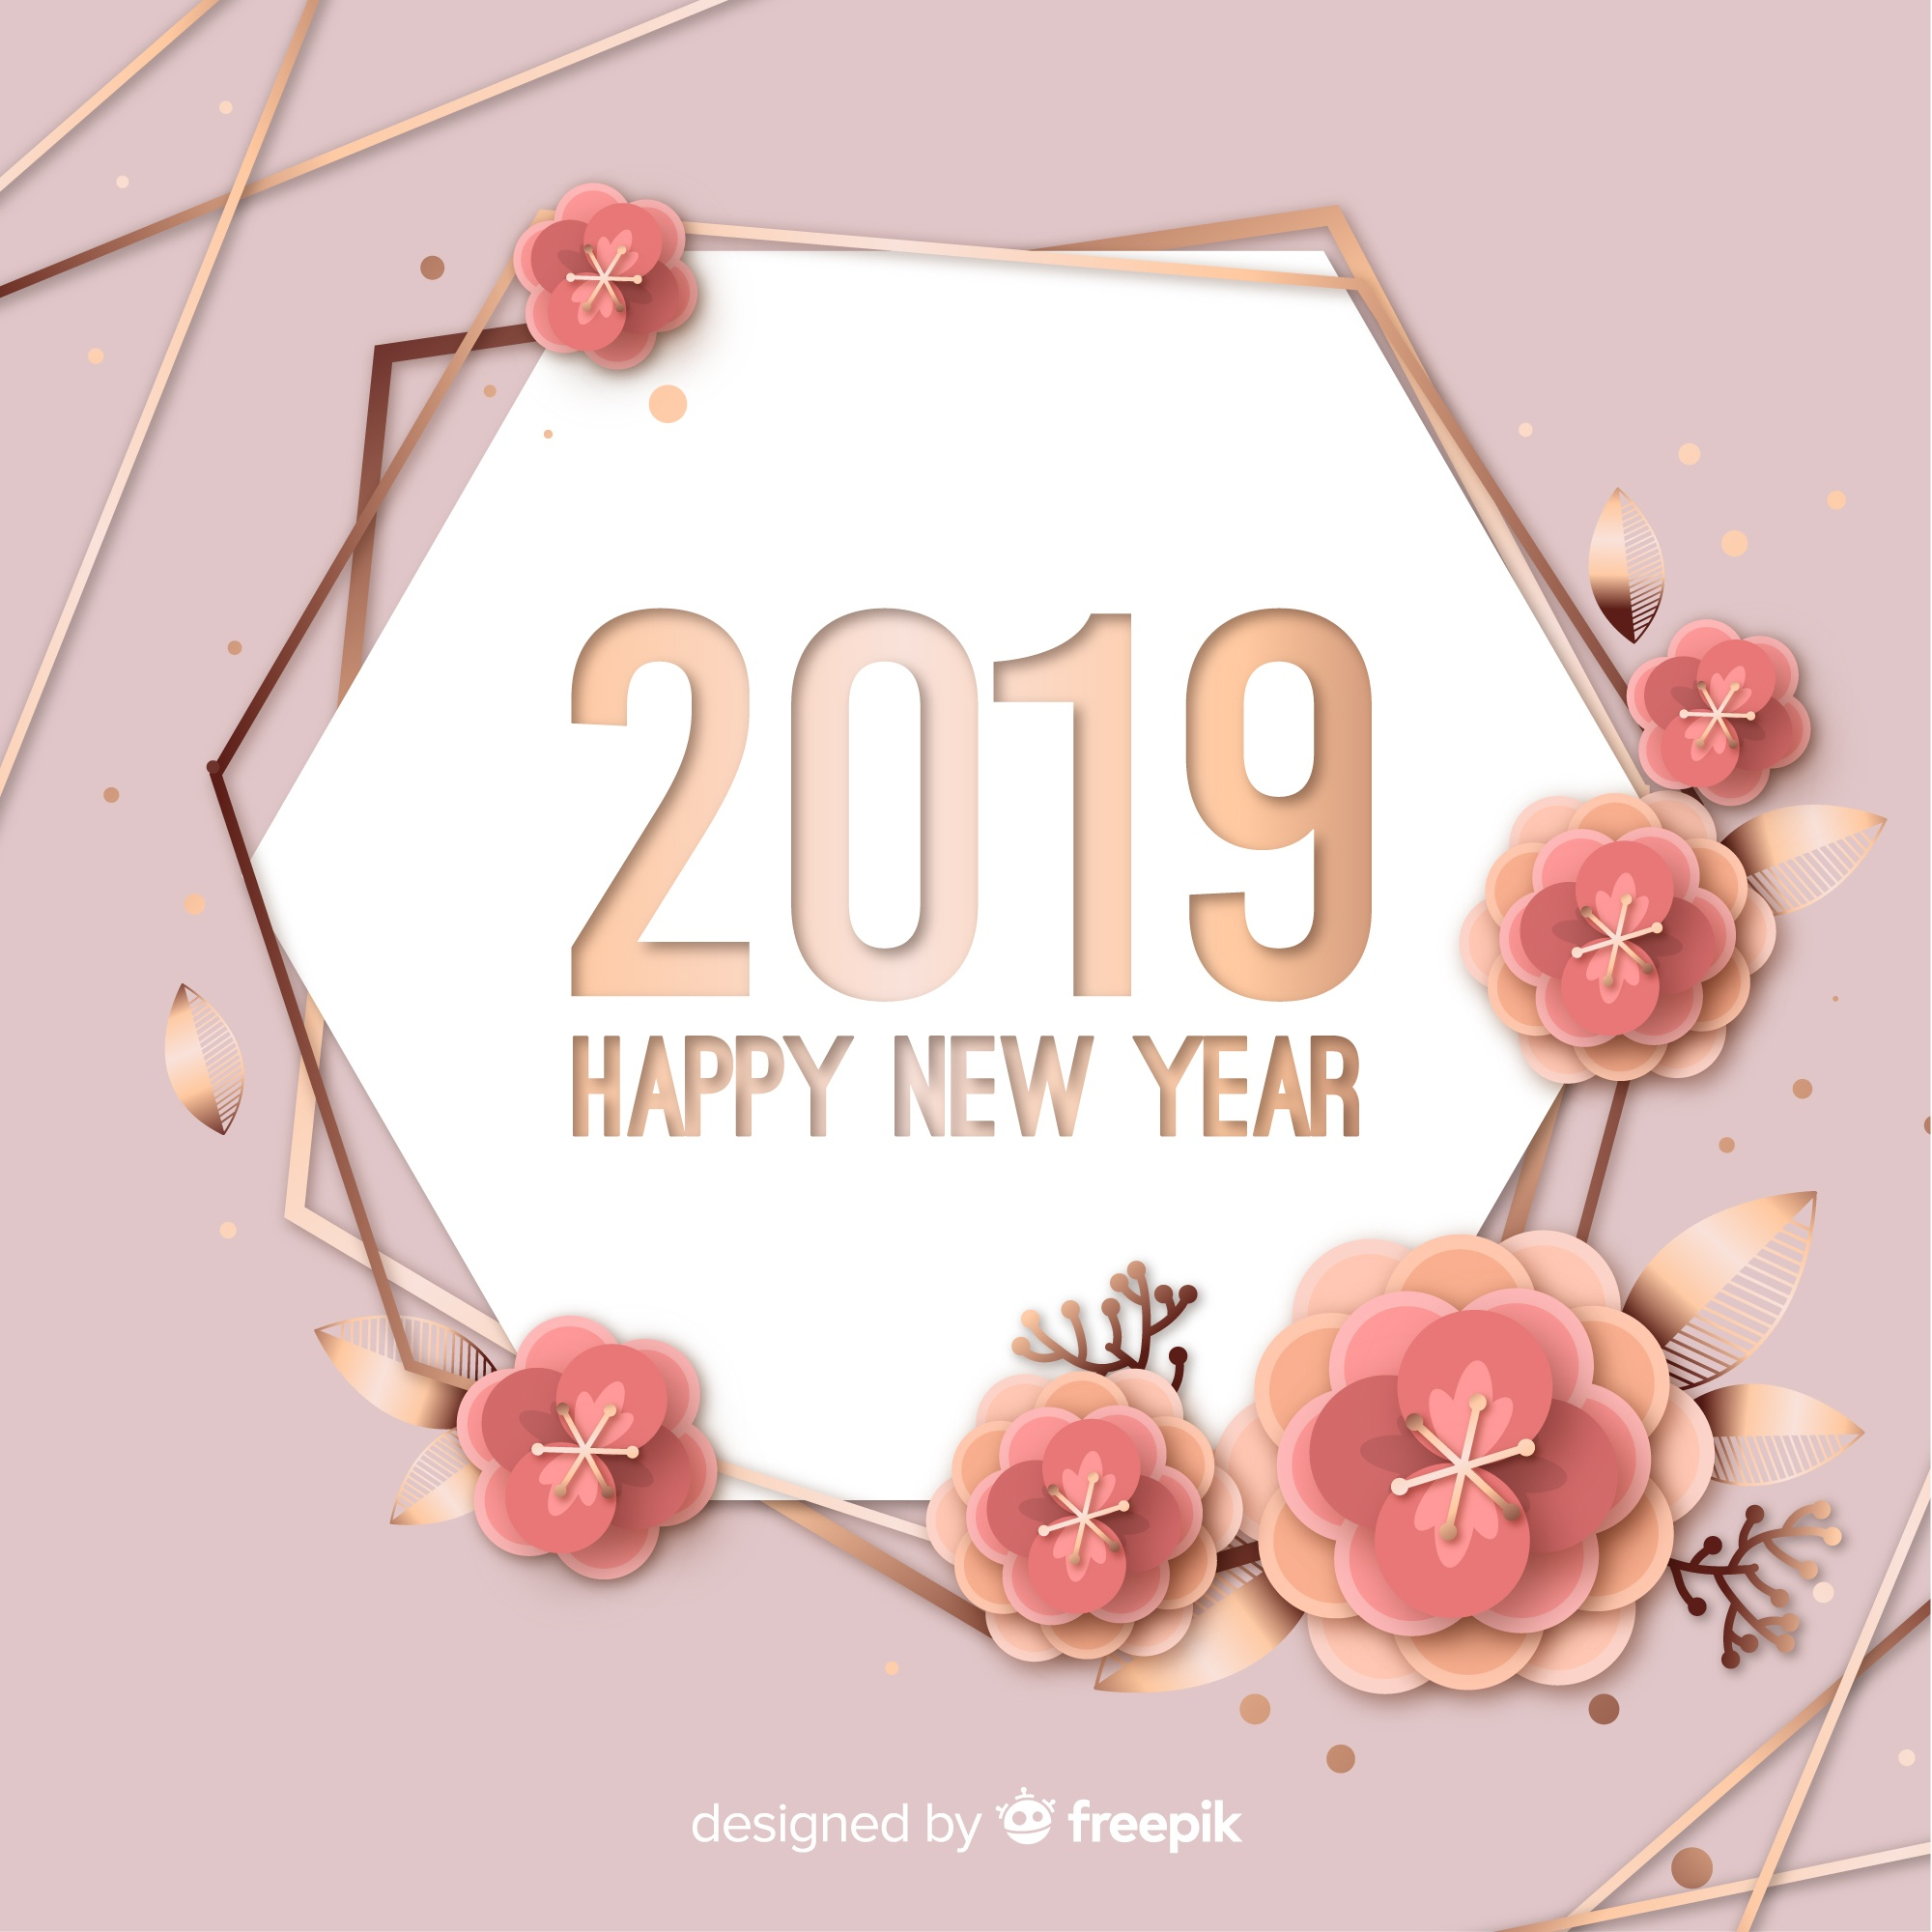 New year 2019 background in paper style